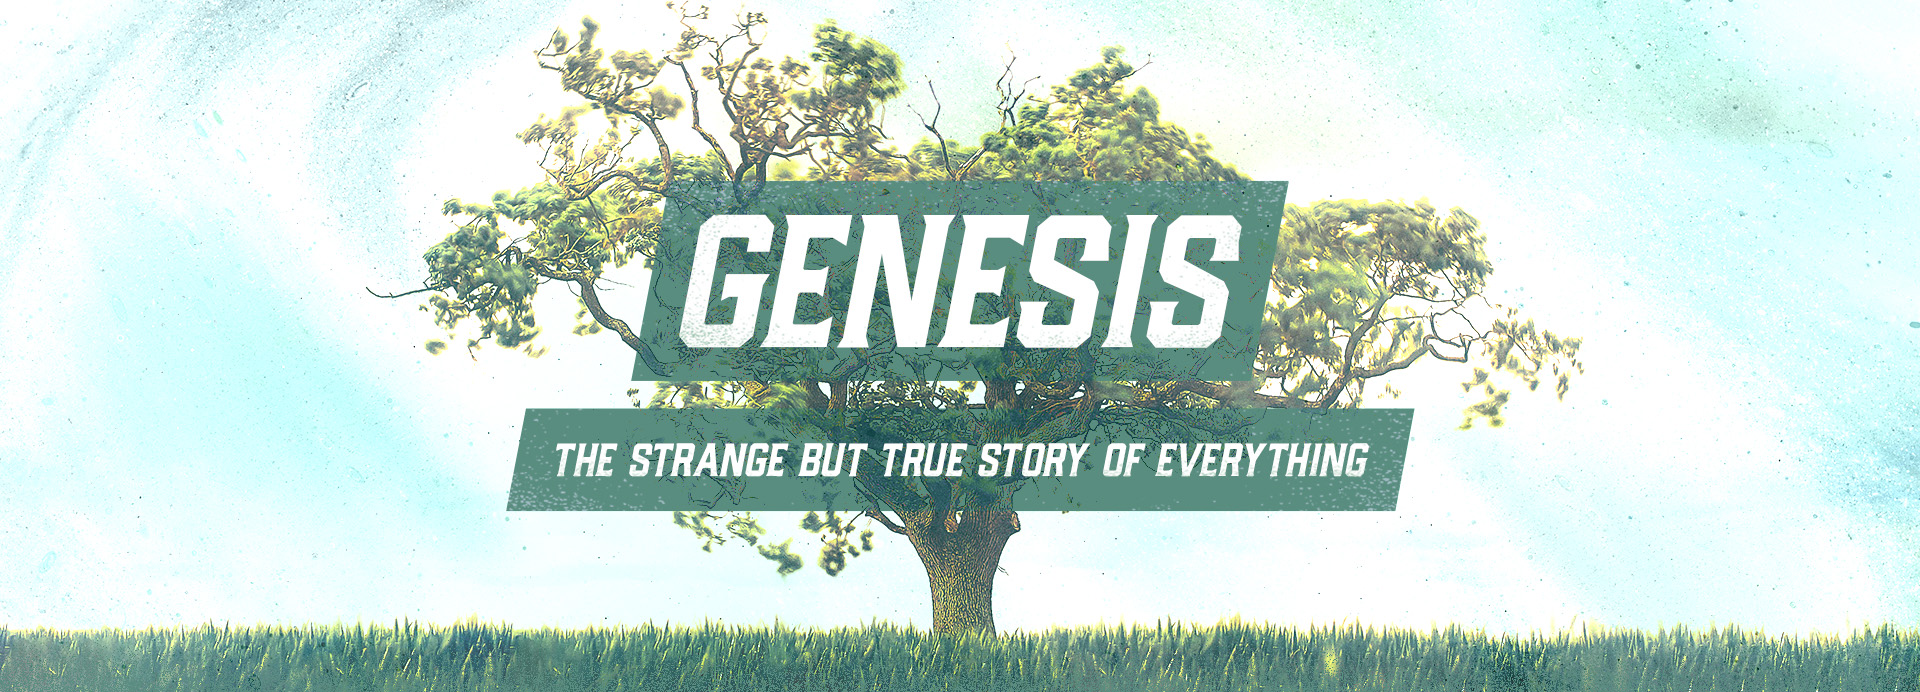 Genesis: The Strange but True Story of Everything